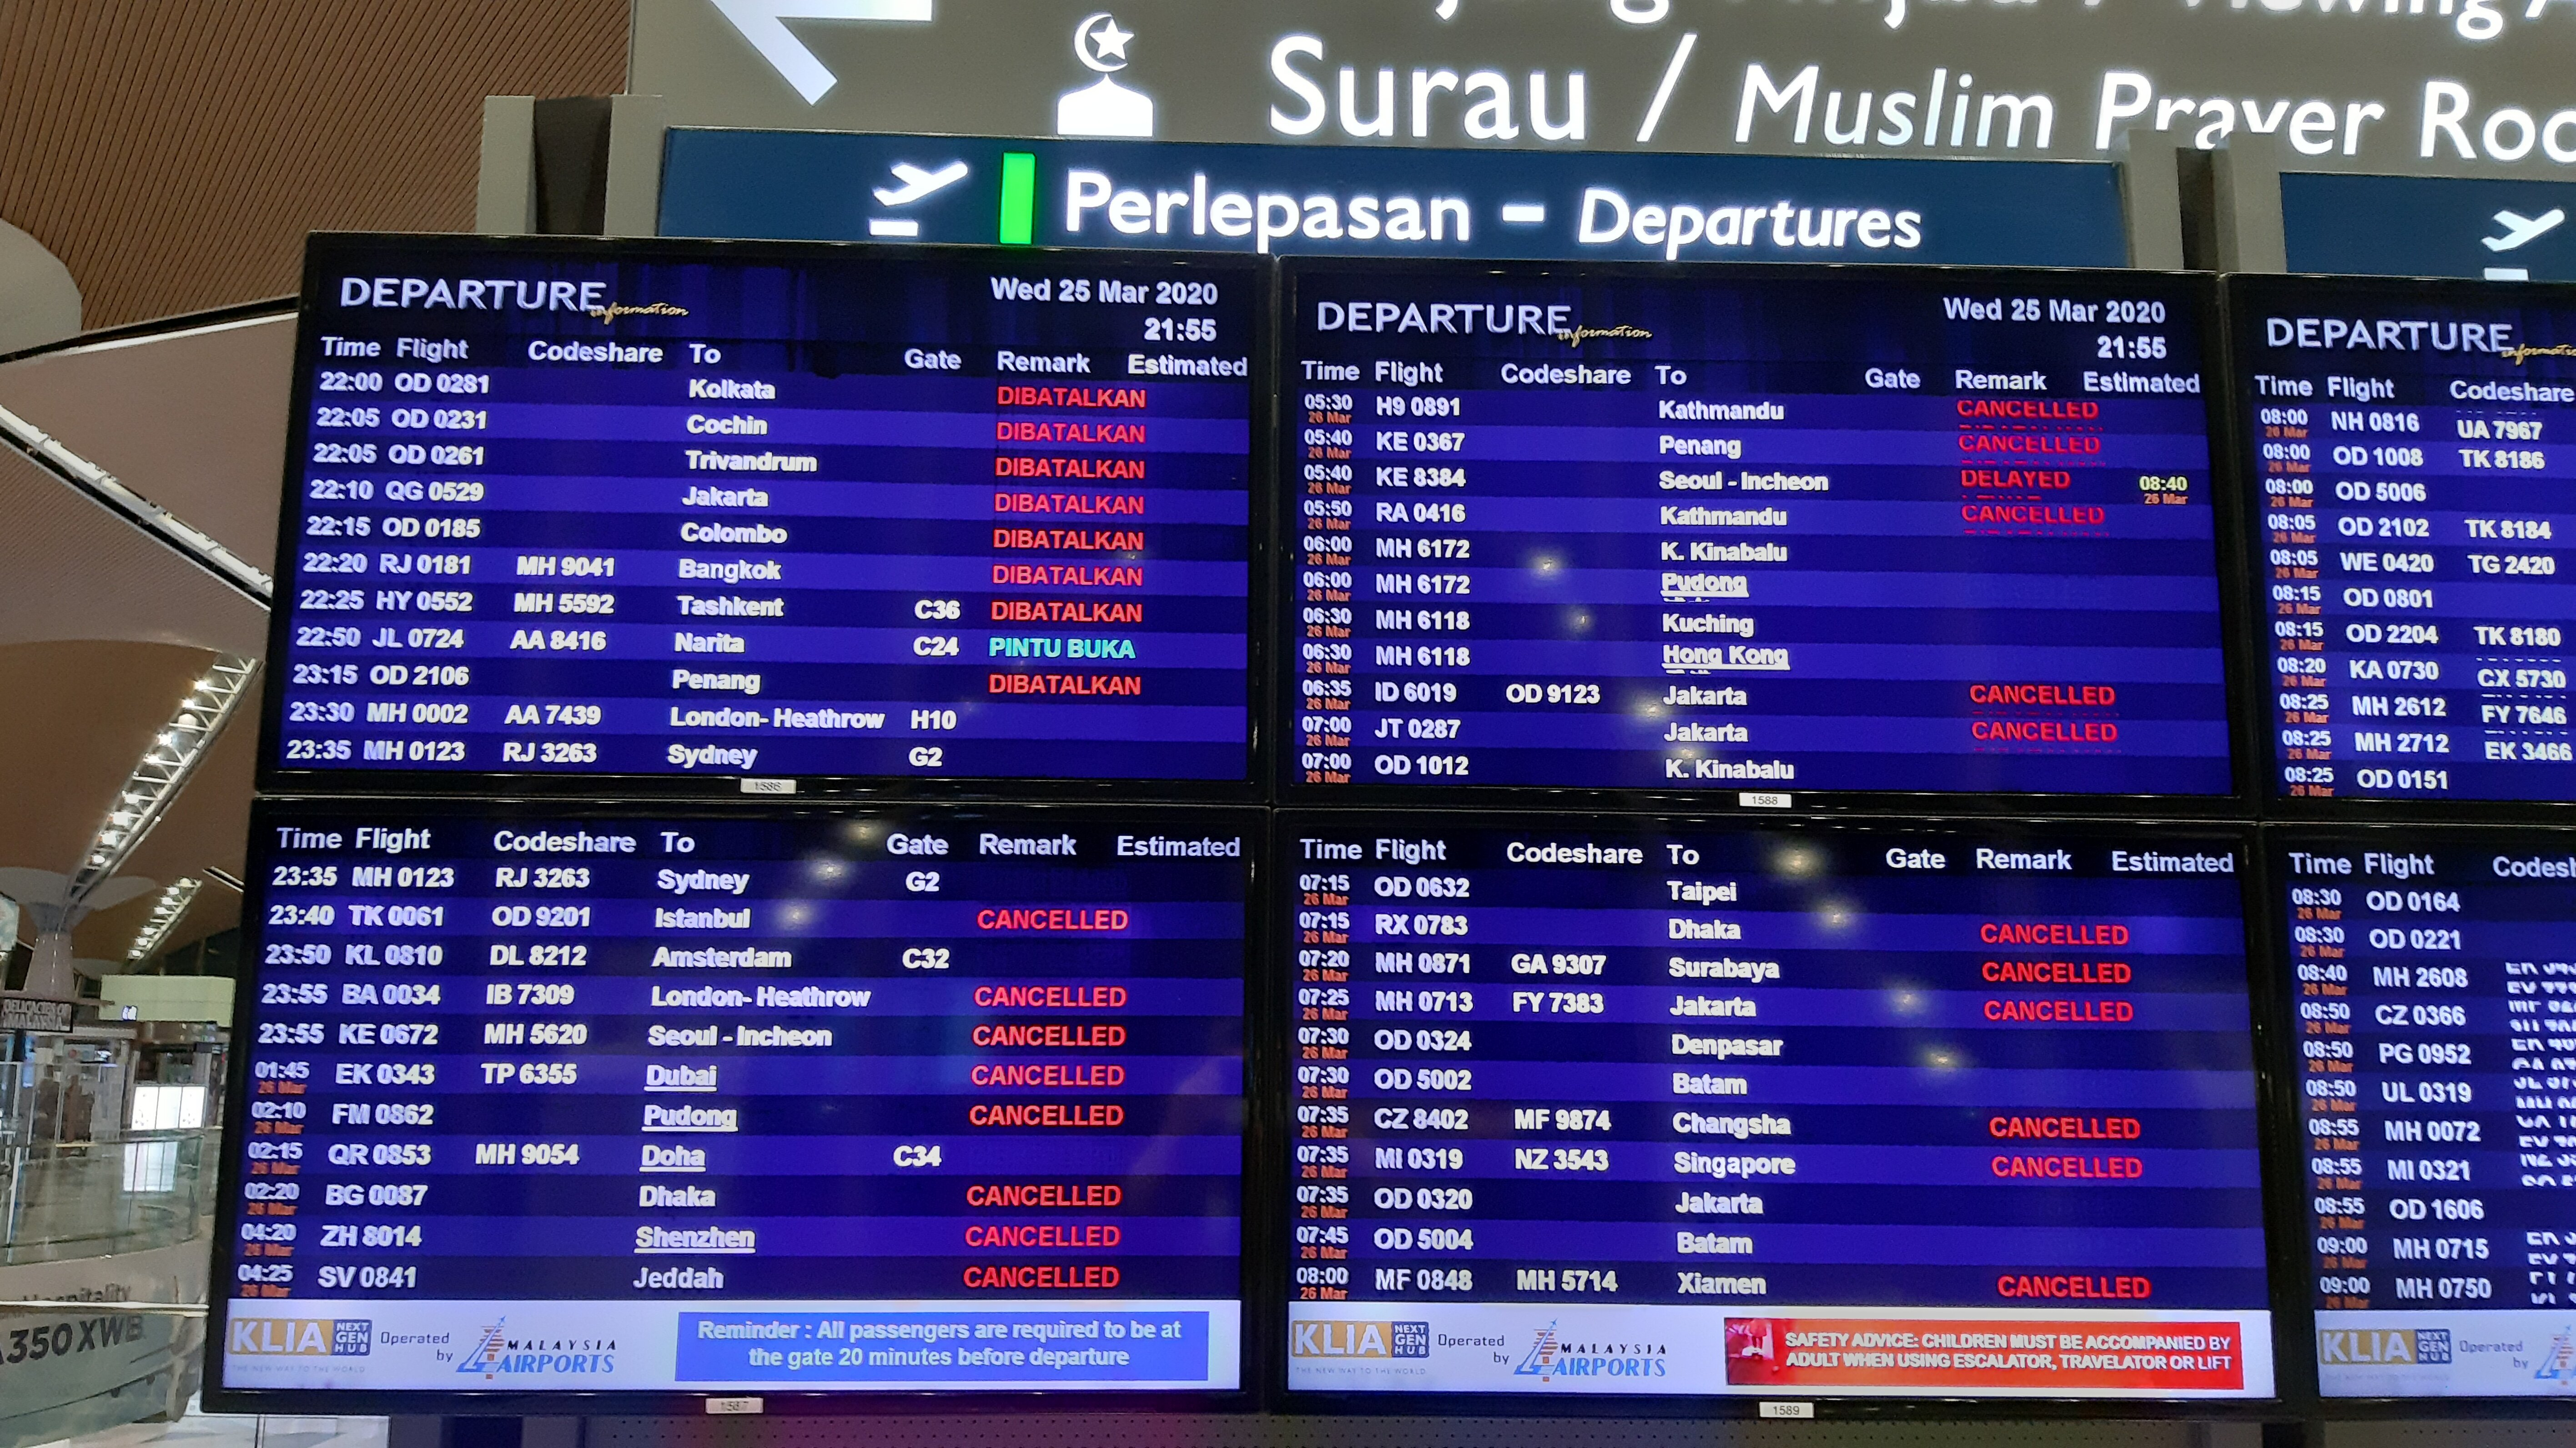 Board showing cancelled flights in KLIA airport.